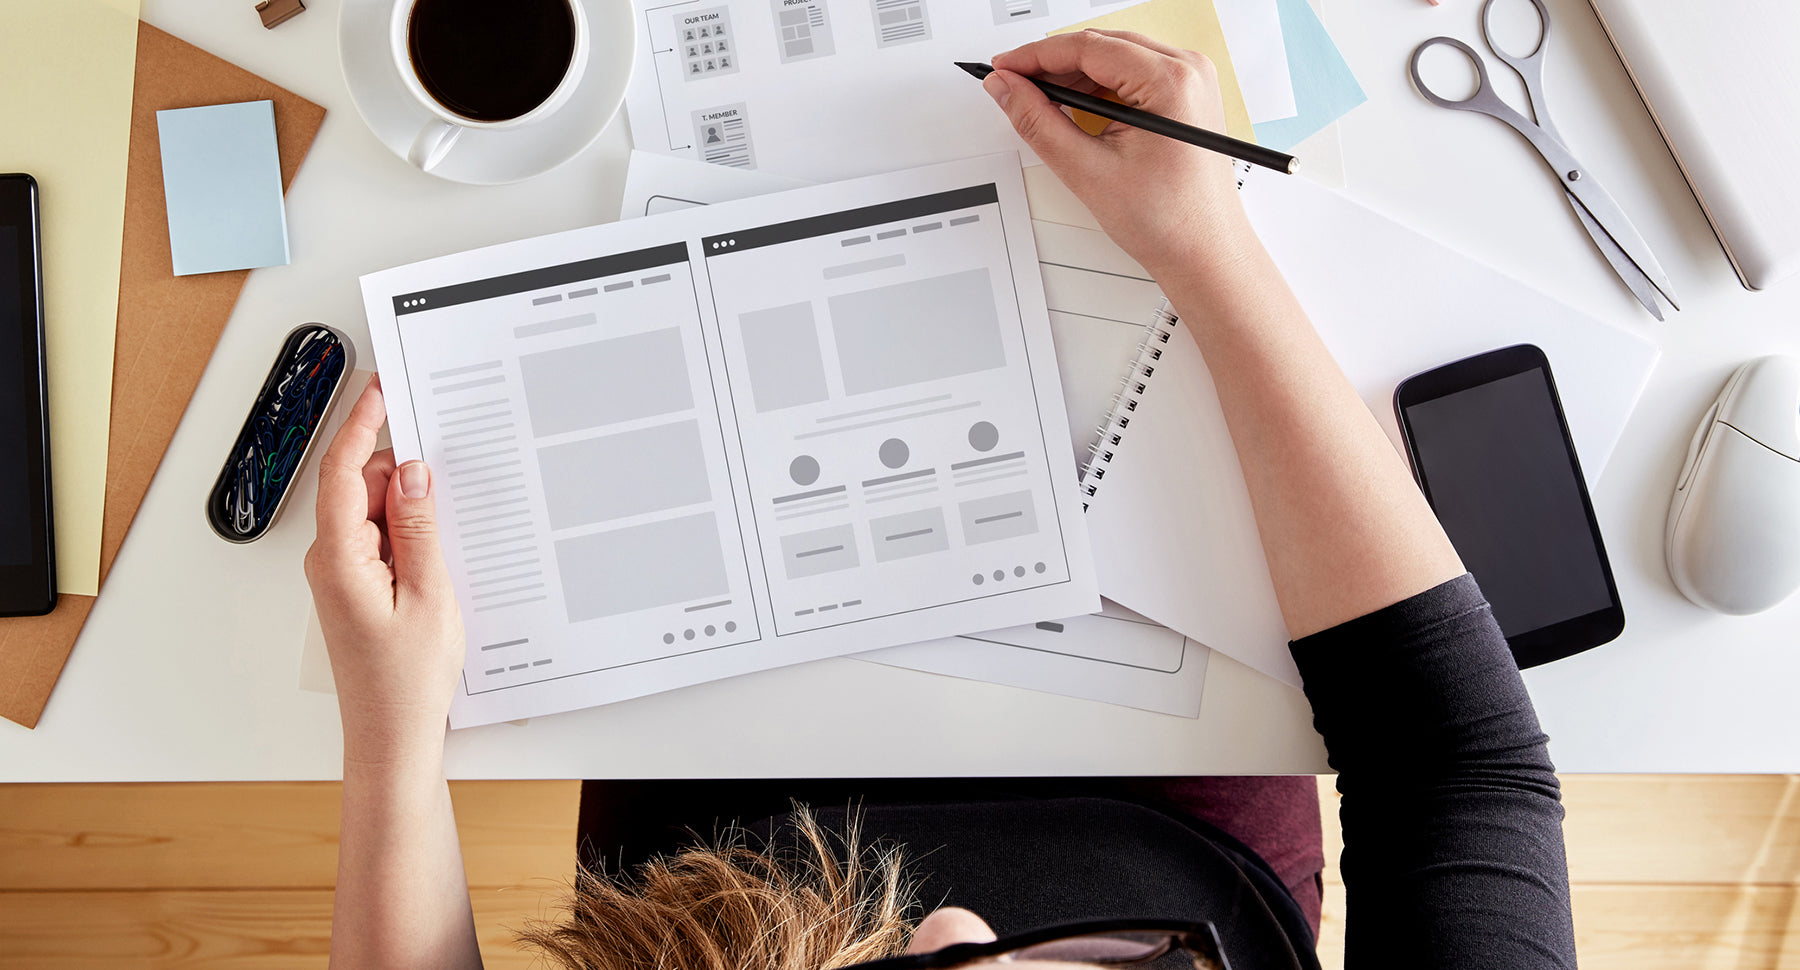 Photograph of a woman working on her website design with a sketch and prototype.